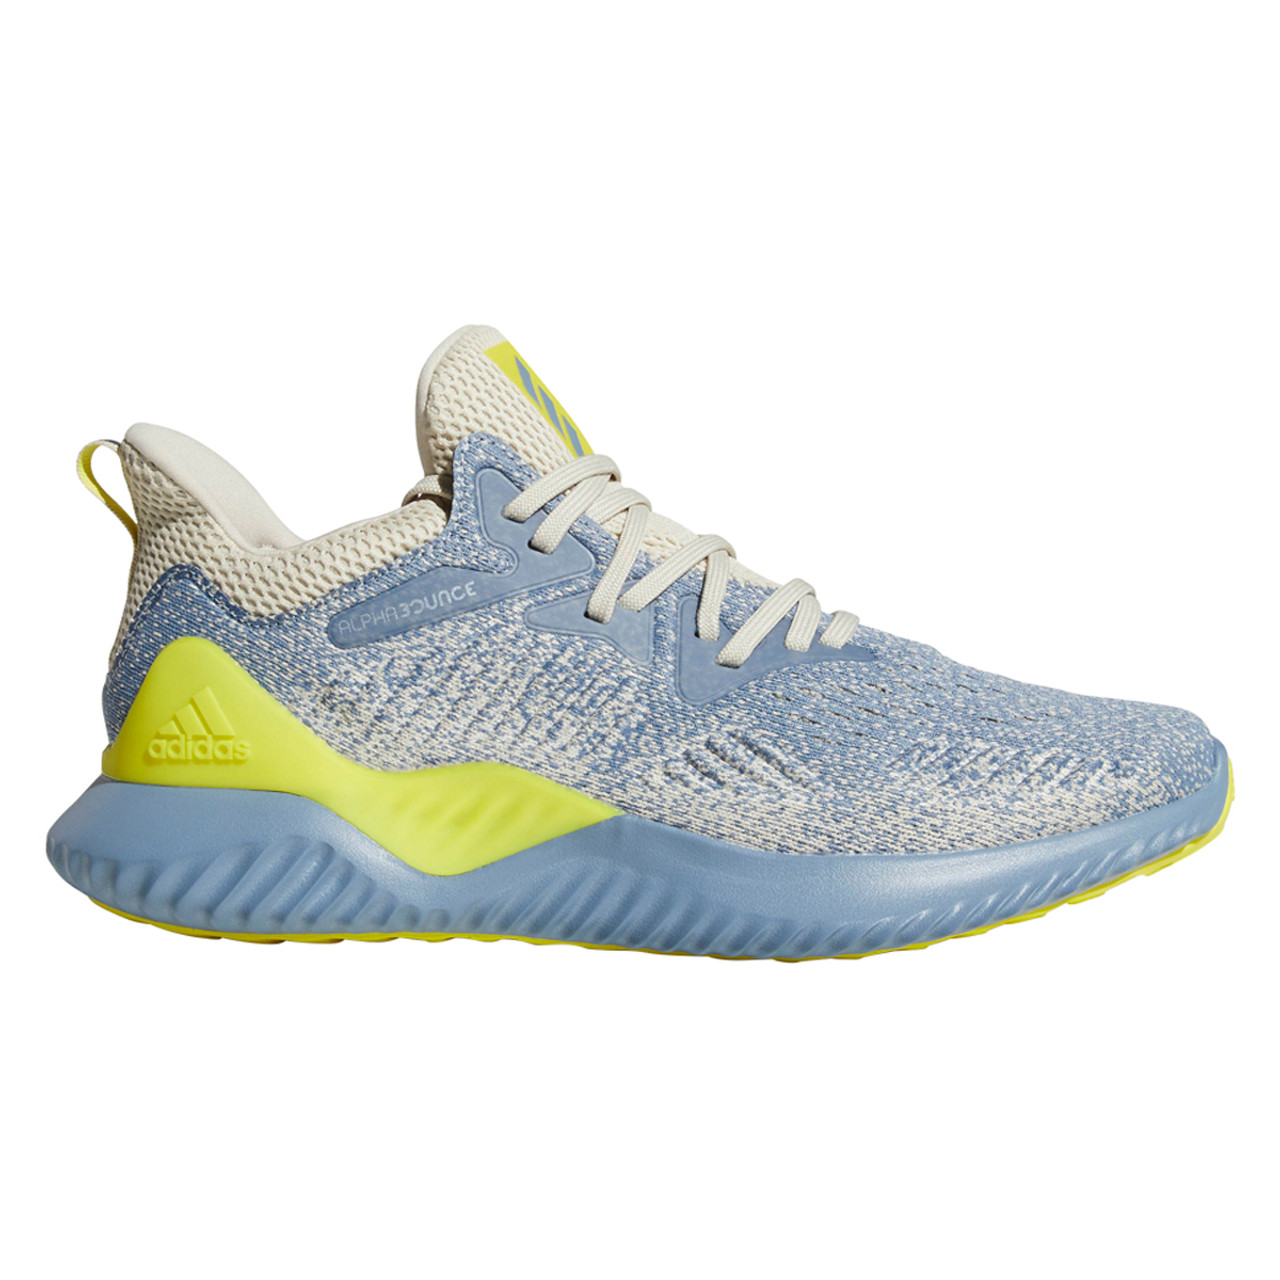 huge discount 21a82 4d2ae Adidas Alphabounce Beyond Men's Sneakers AQ0576 - Steel, Yellow